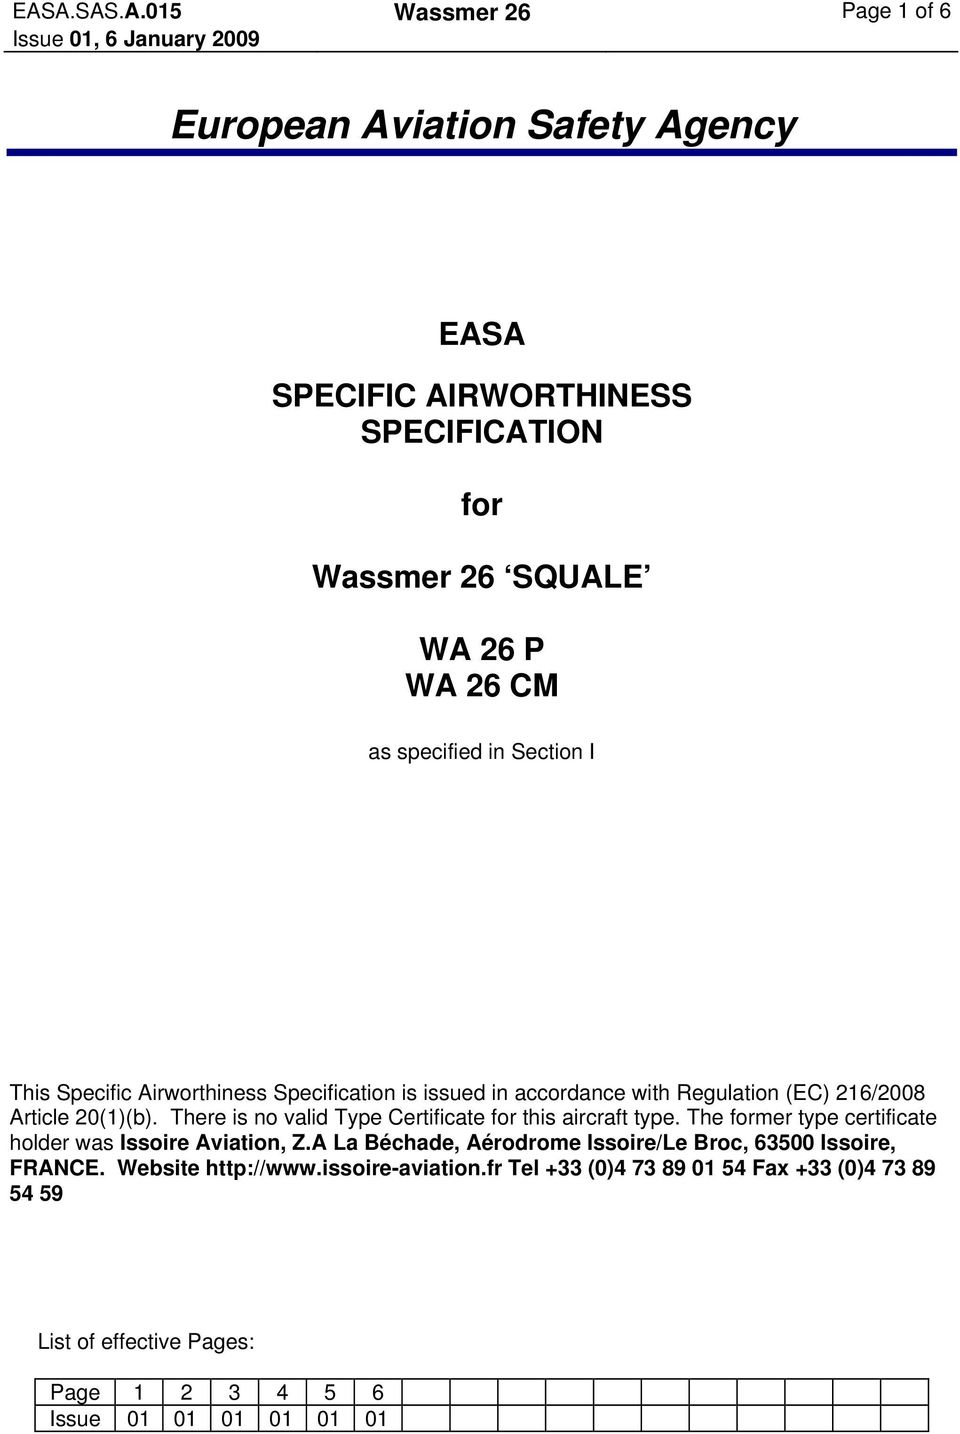 There is no valid Type Certificate for this aircraft type. The former type certificate holder was Issoire Aviation, Z.